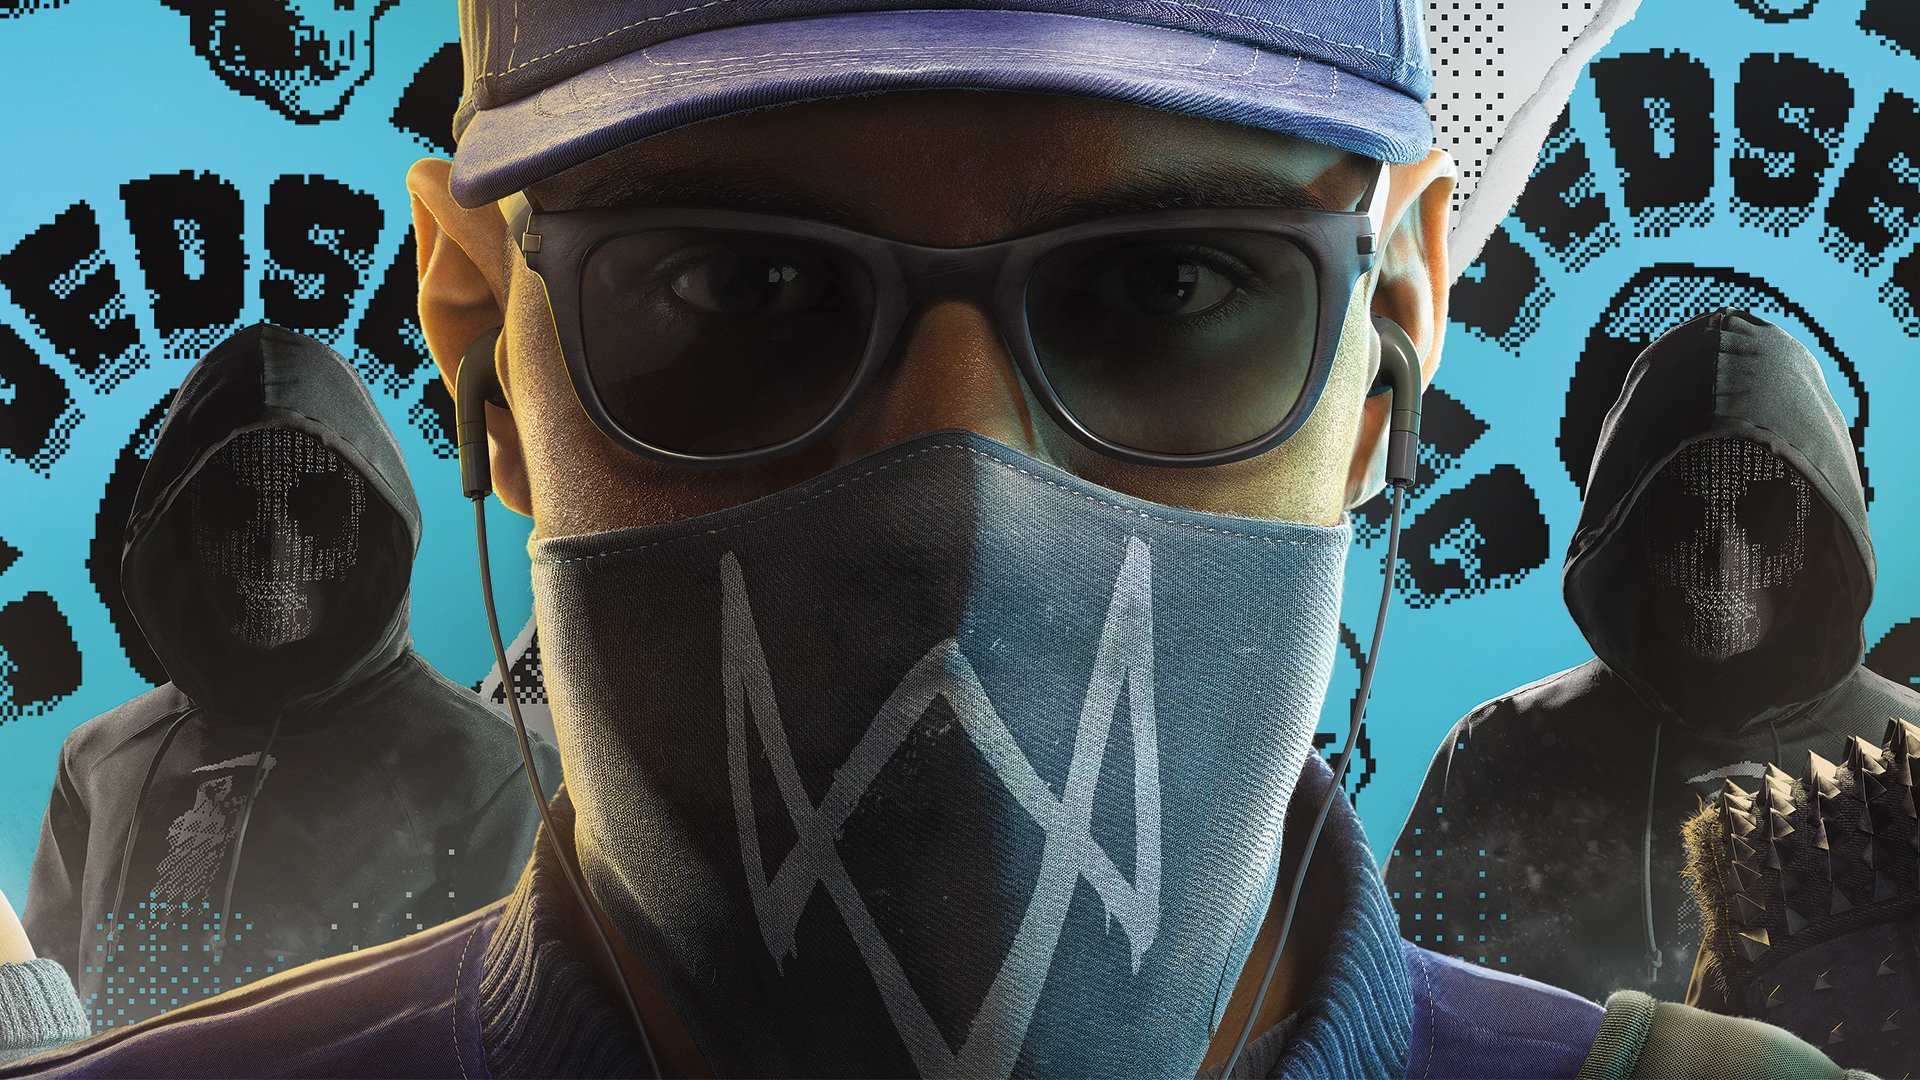 Download Full Hd 1080p Watch Dogs 2 Pc Wallpaper Id 366063 For Free